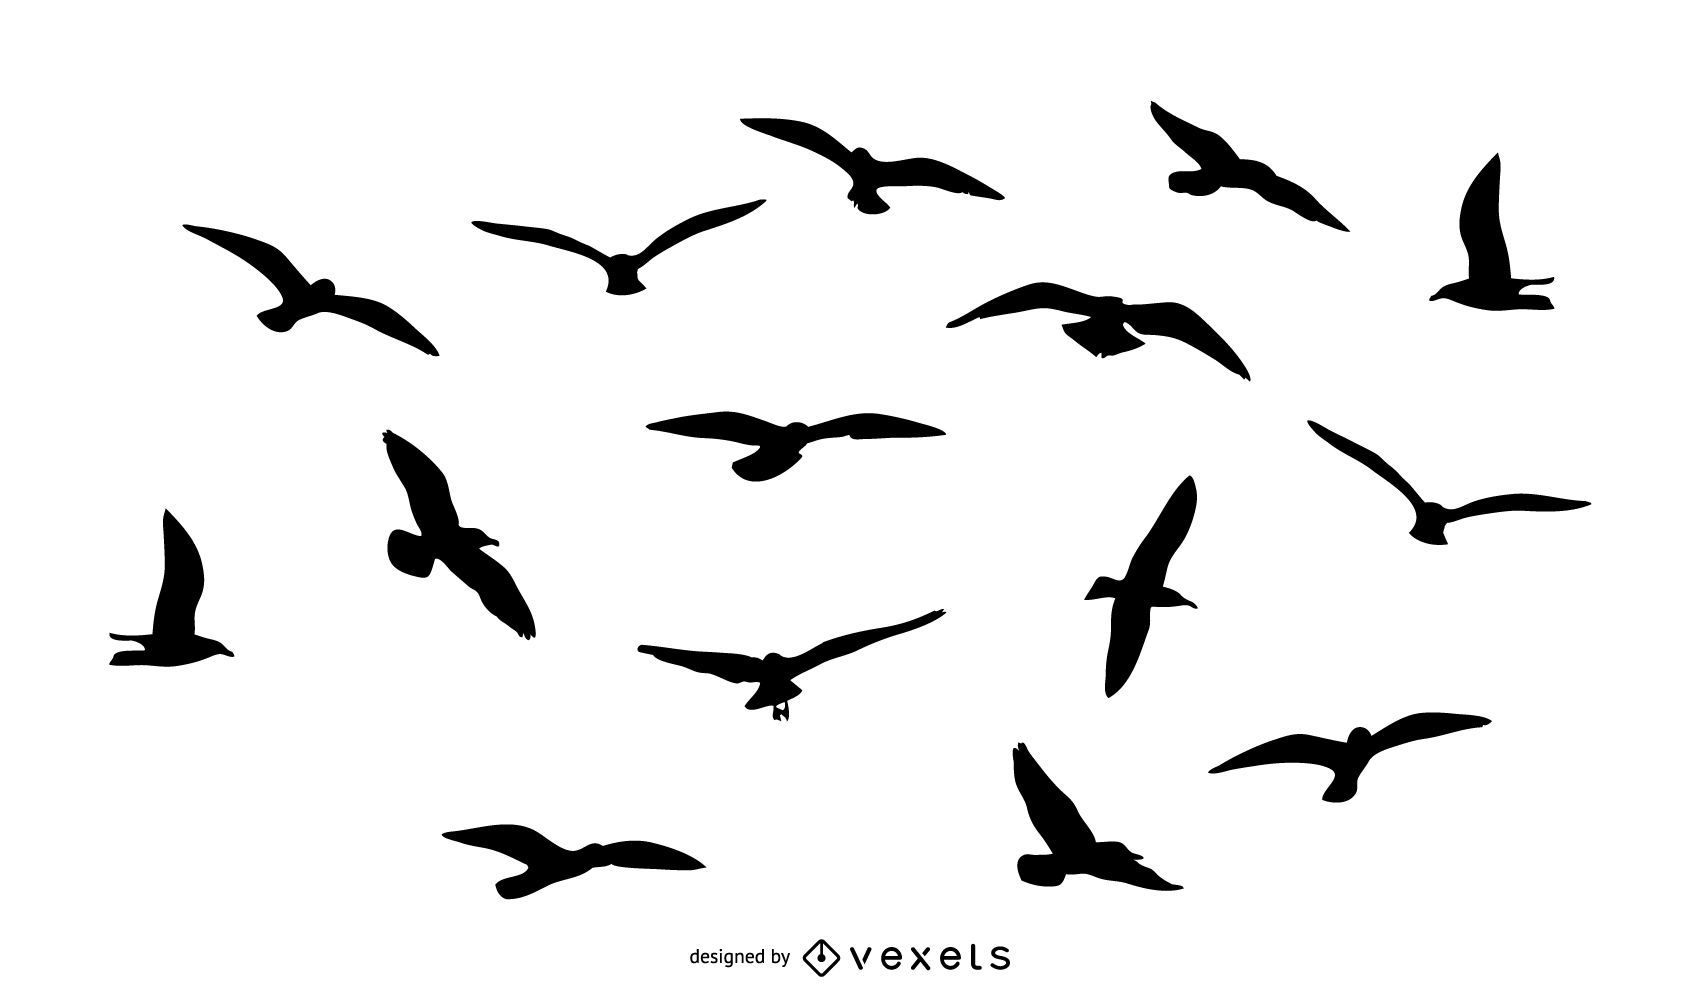 Silhouettes Of Flying Birds Stock Vector - Illustration of curve black